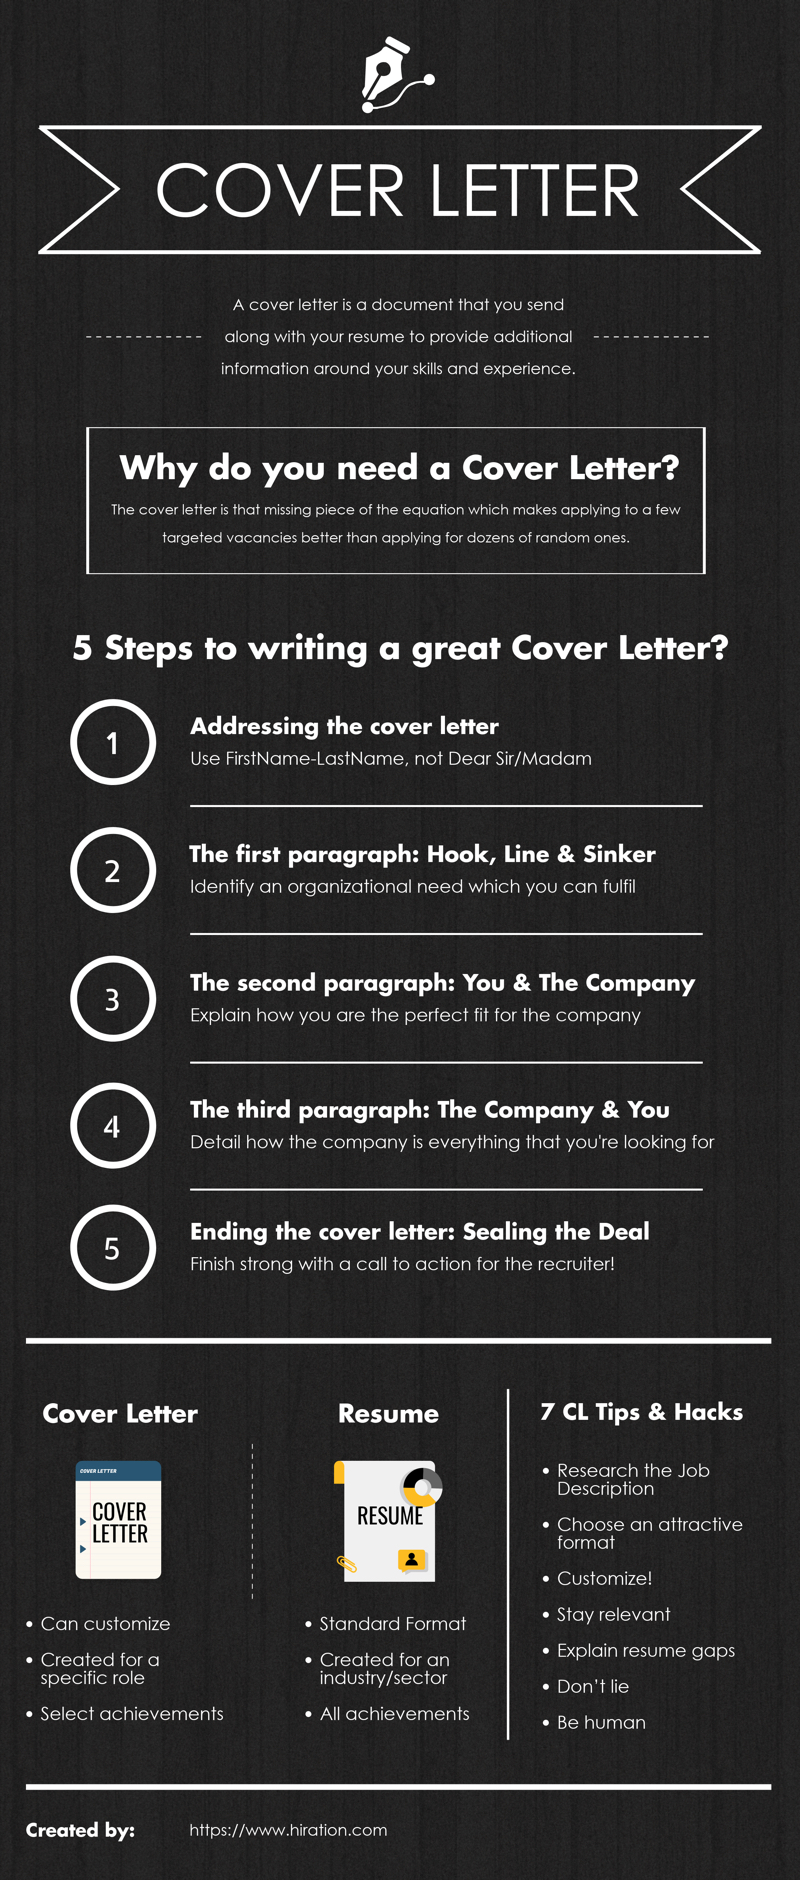 How to write a Cover Letter - 2019 Guide with Examples ...